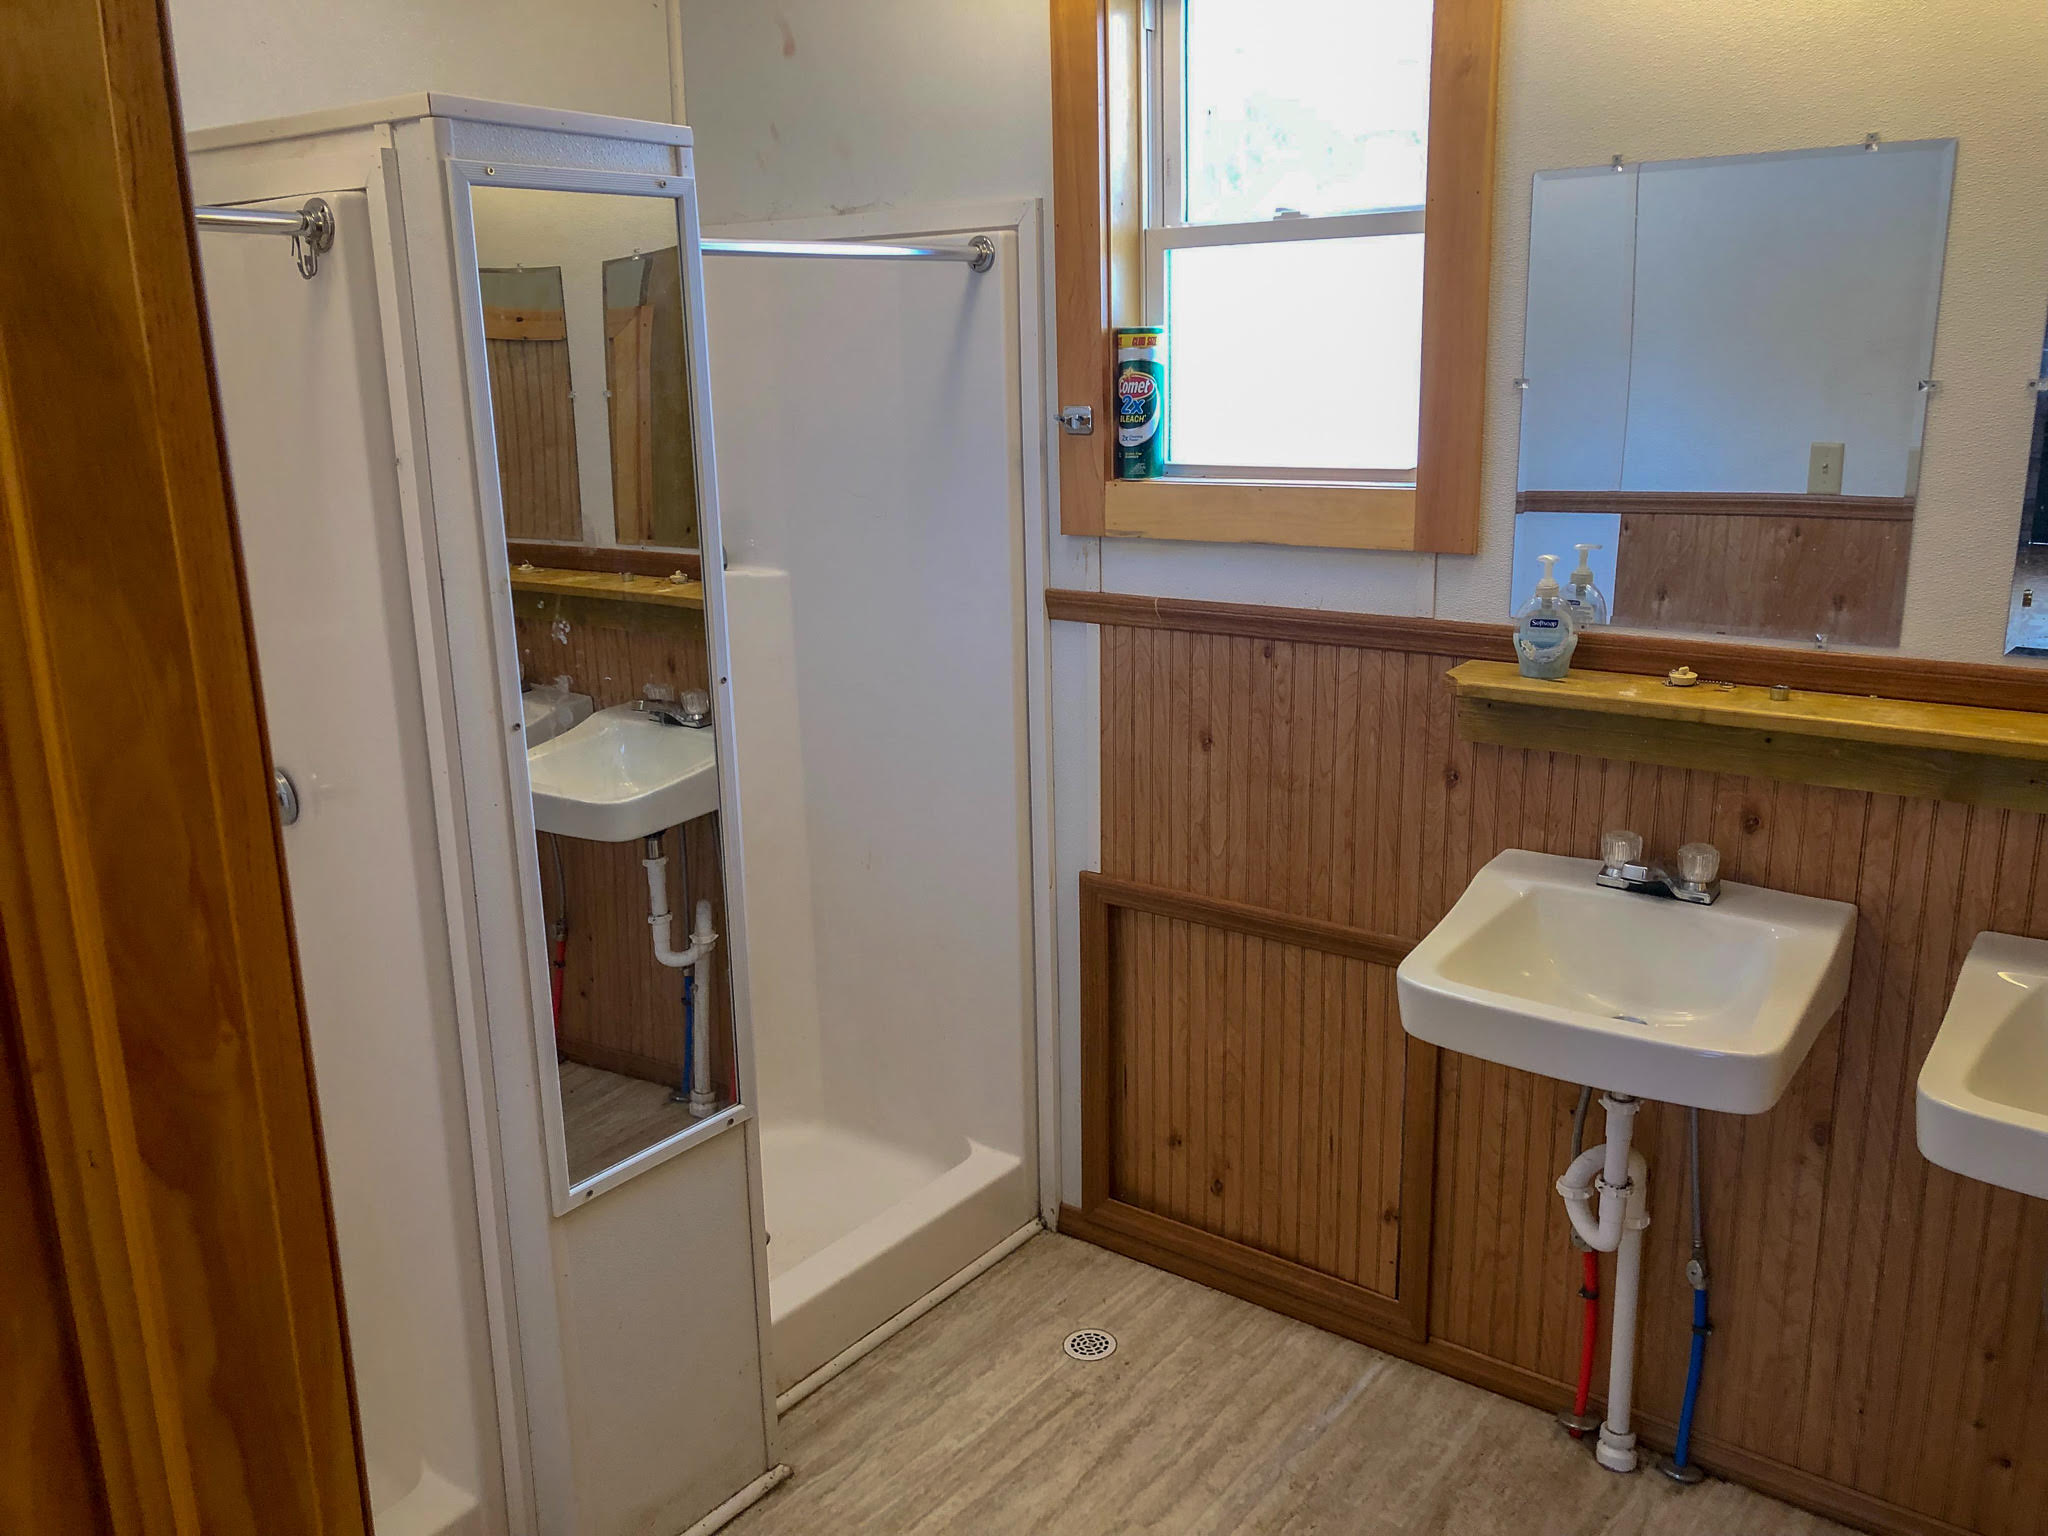 Copy of Cabin showers